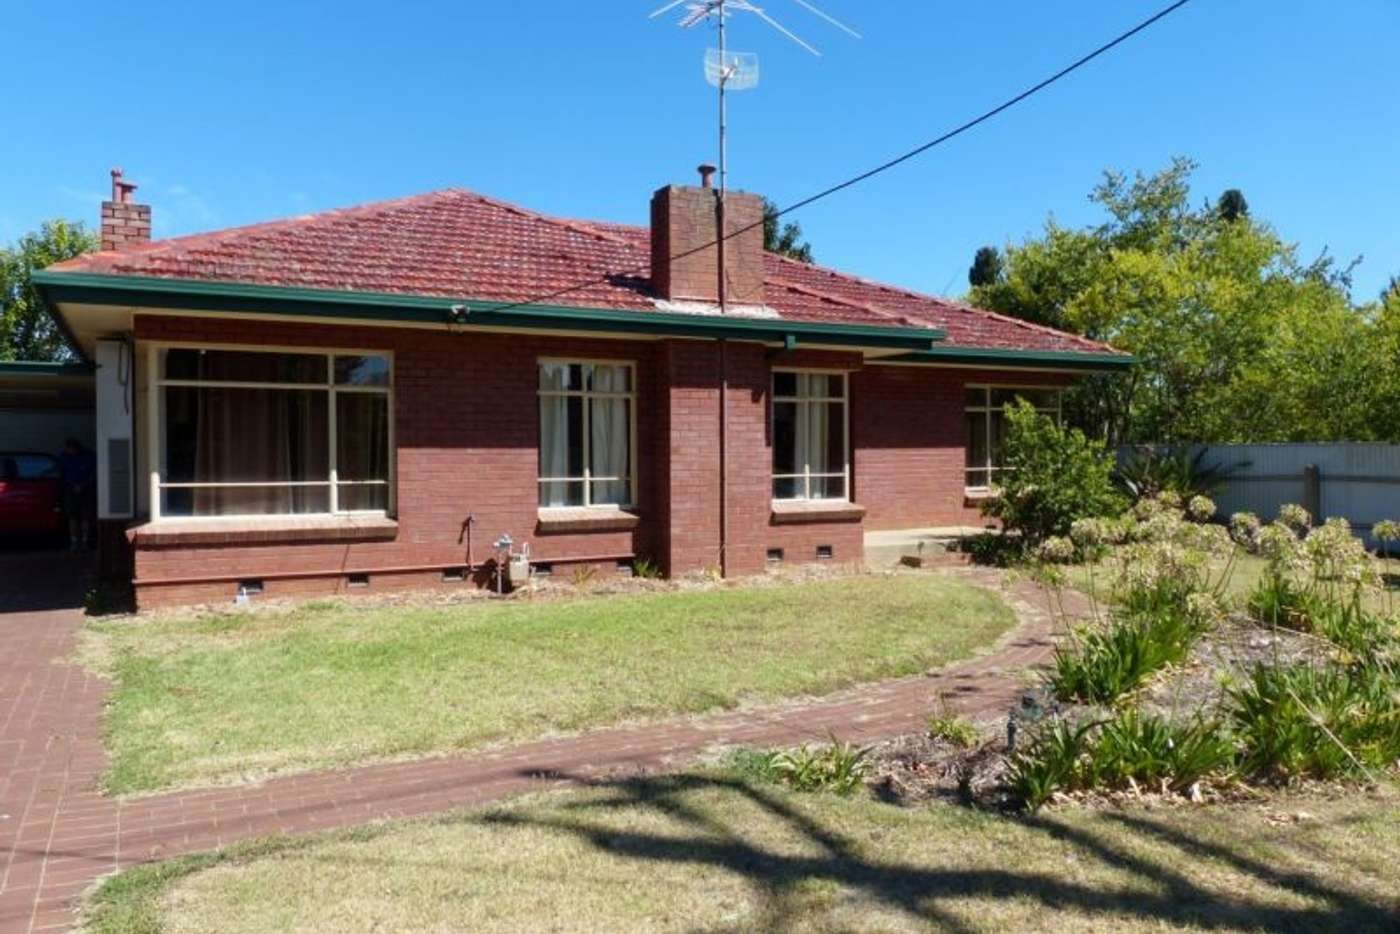 Main view of Homely house listing, 481 Hovell Srtreet, Albury NSW 2640